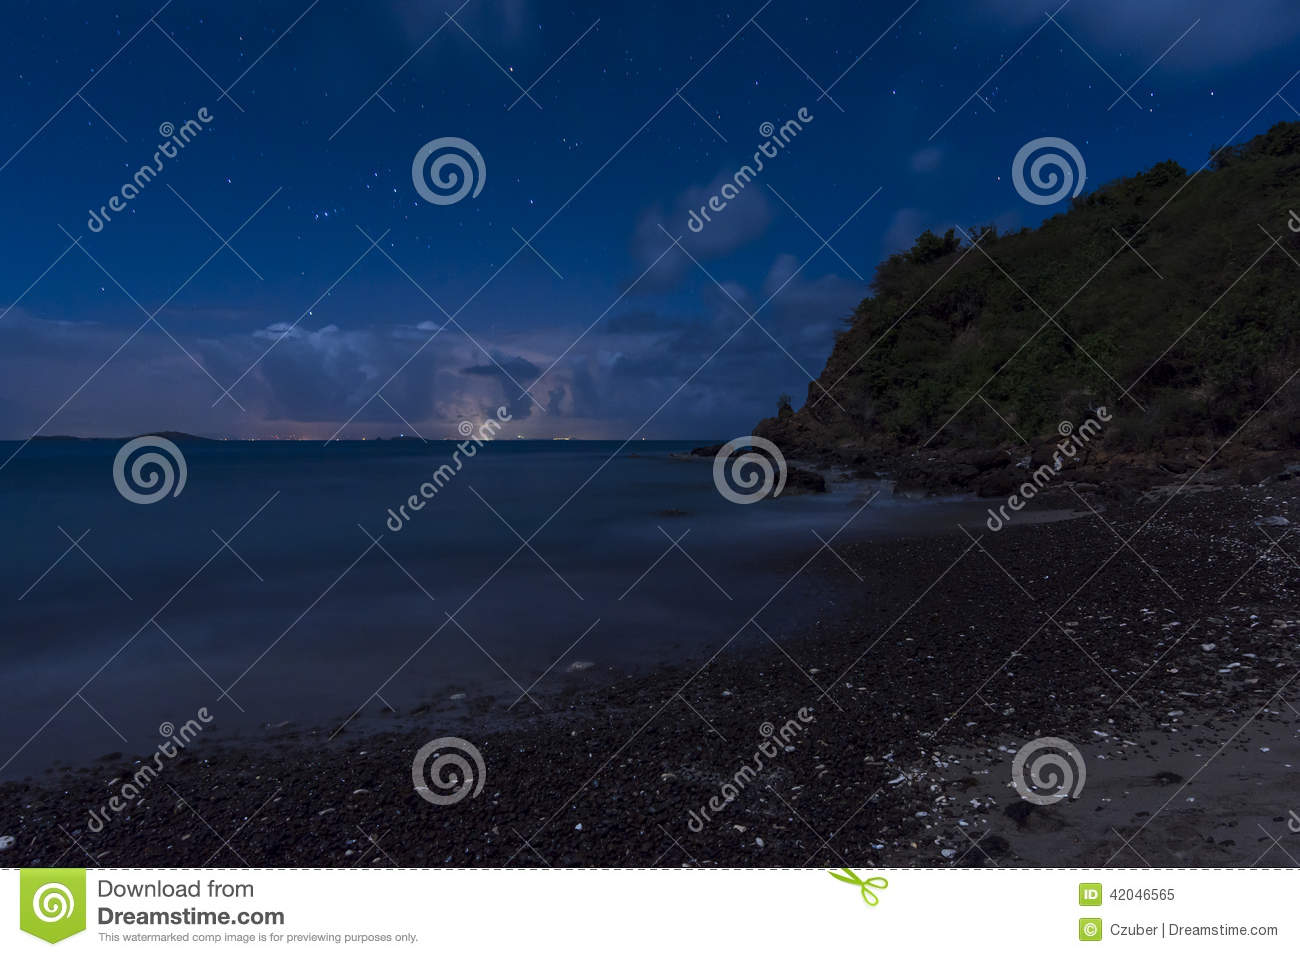 Beautiful Starry Night Sky On Beach Of Tropical Island Culebra With Puerto Rico In Distance